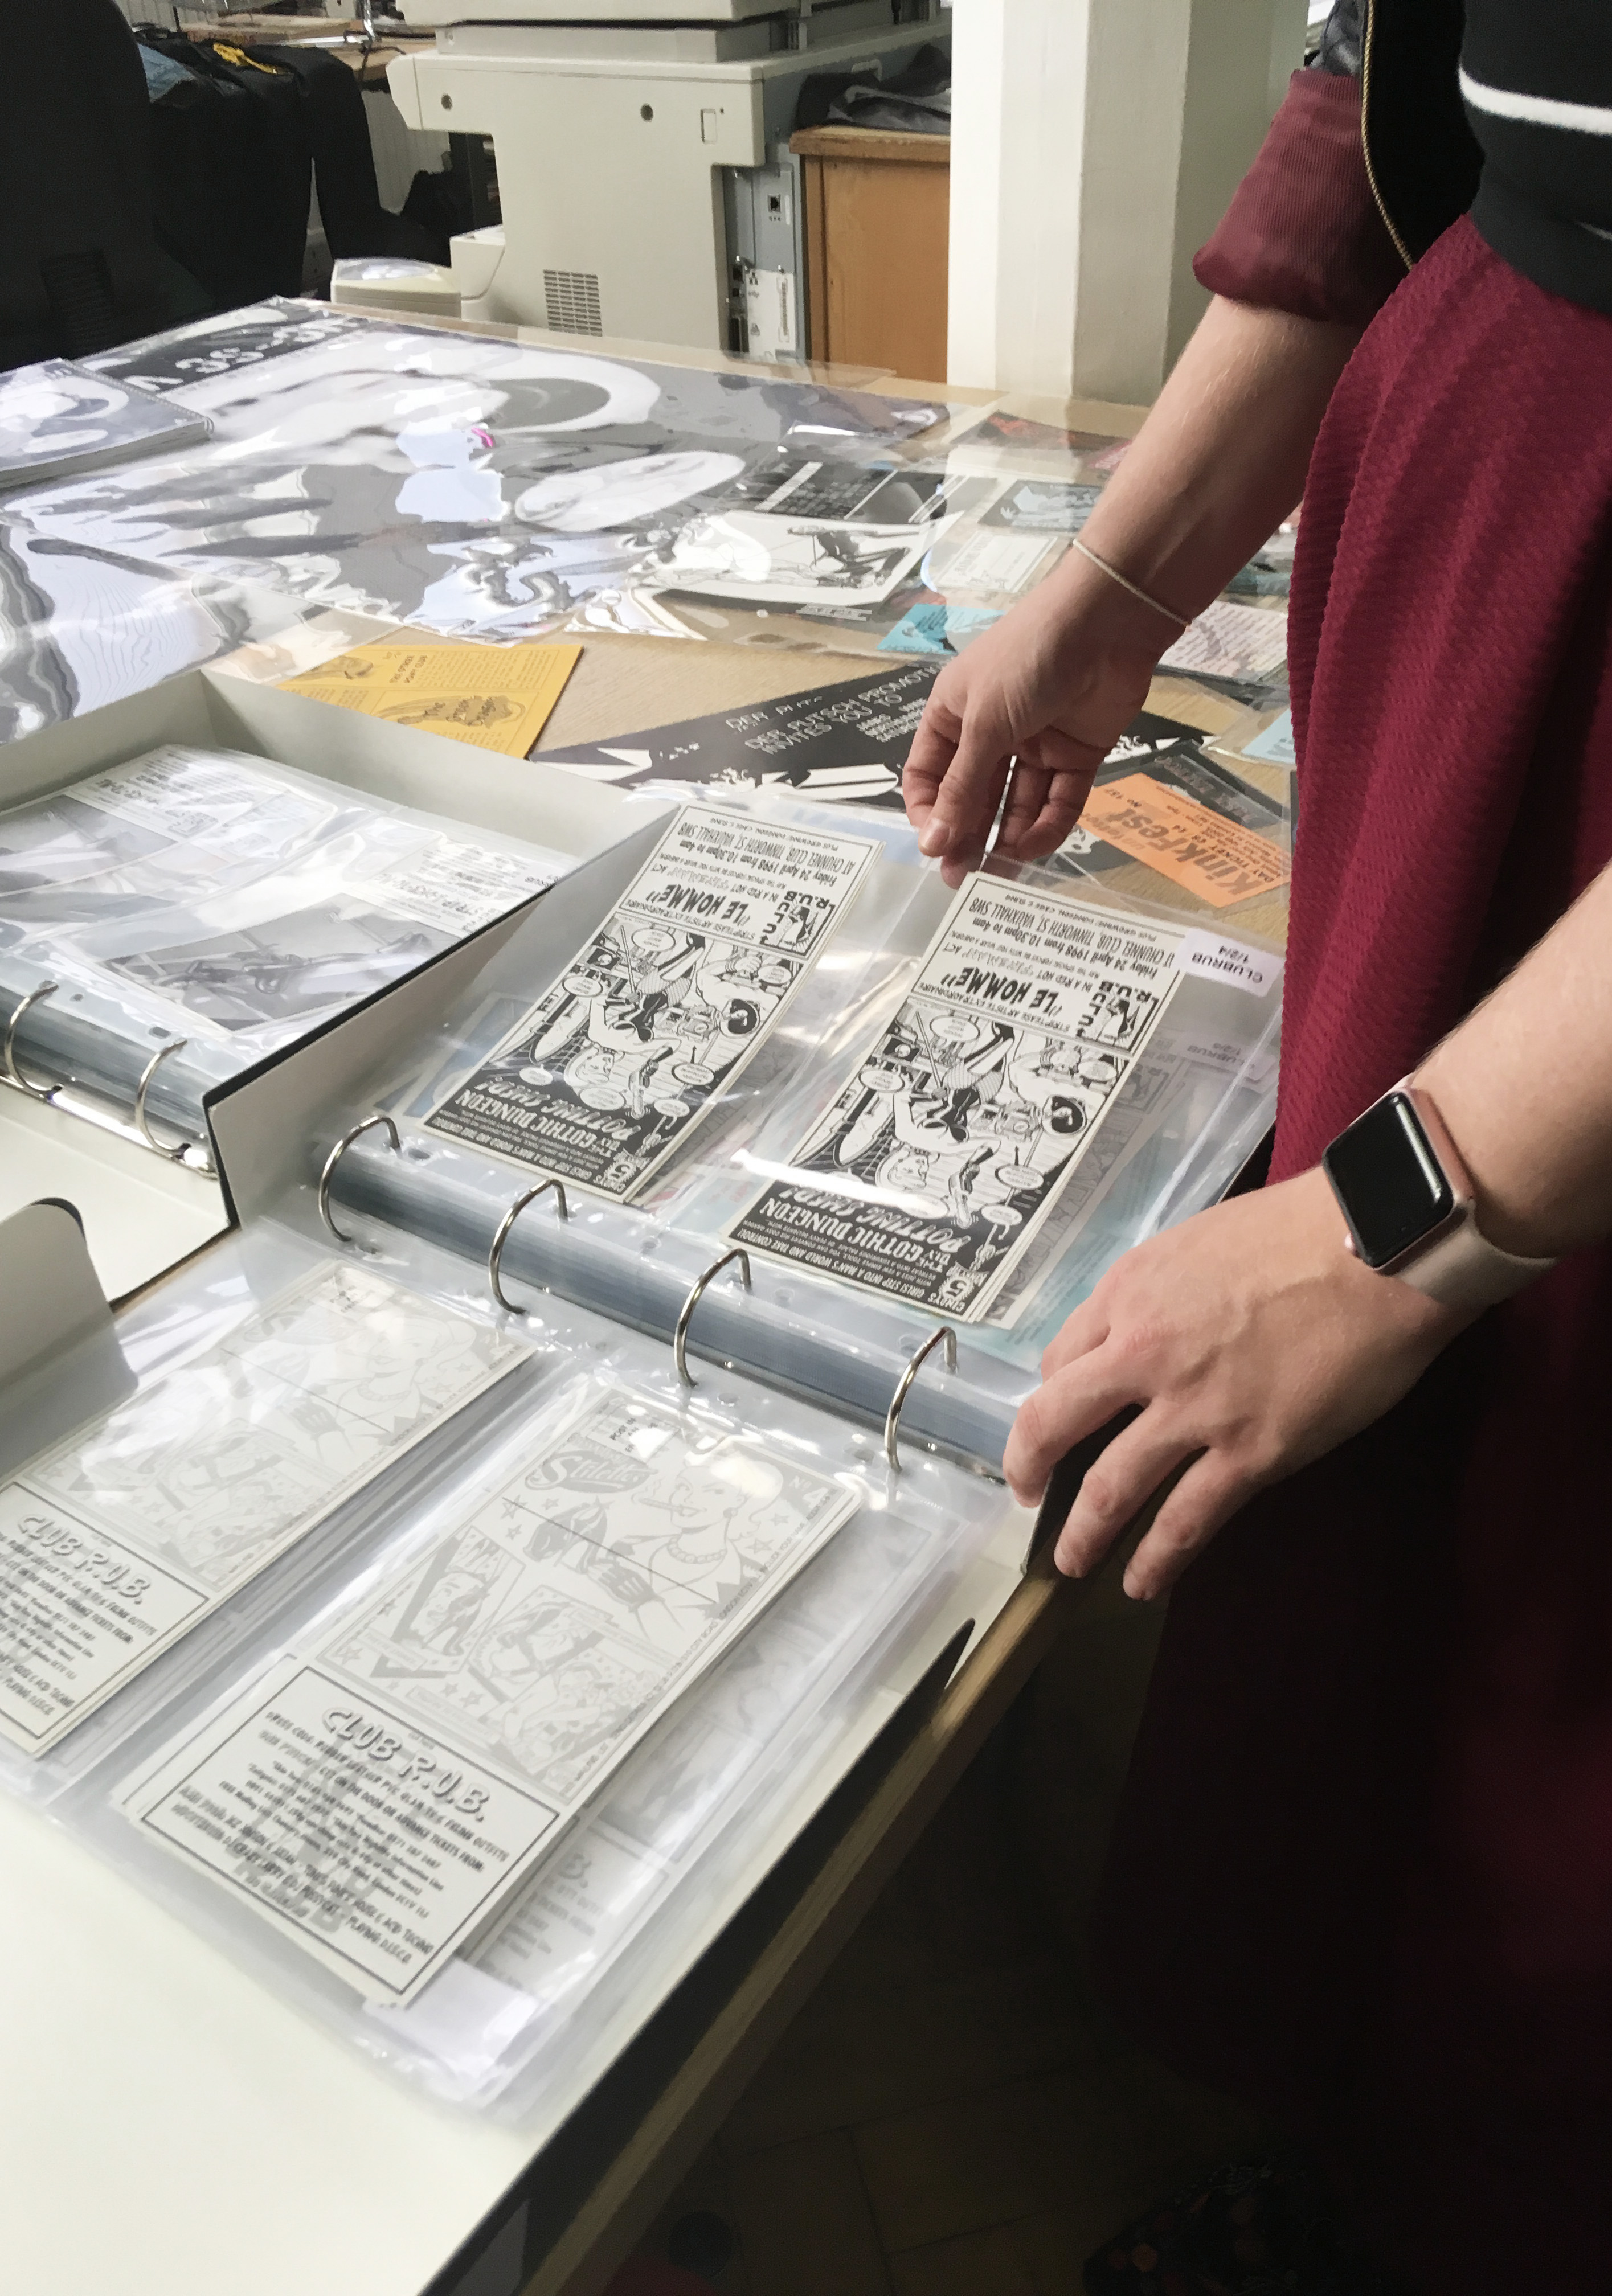 A midshot of a folder containing old b& w printed flyers at the Leather Archive. You can see the arms and part of the viewers body. They are wearing a maroon dress.